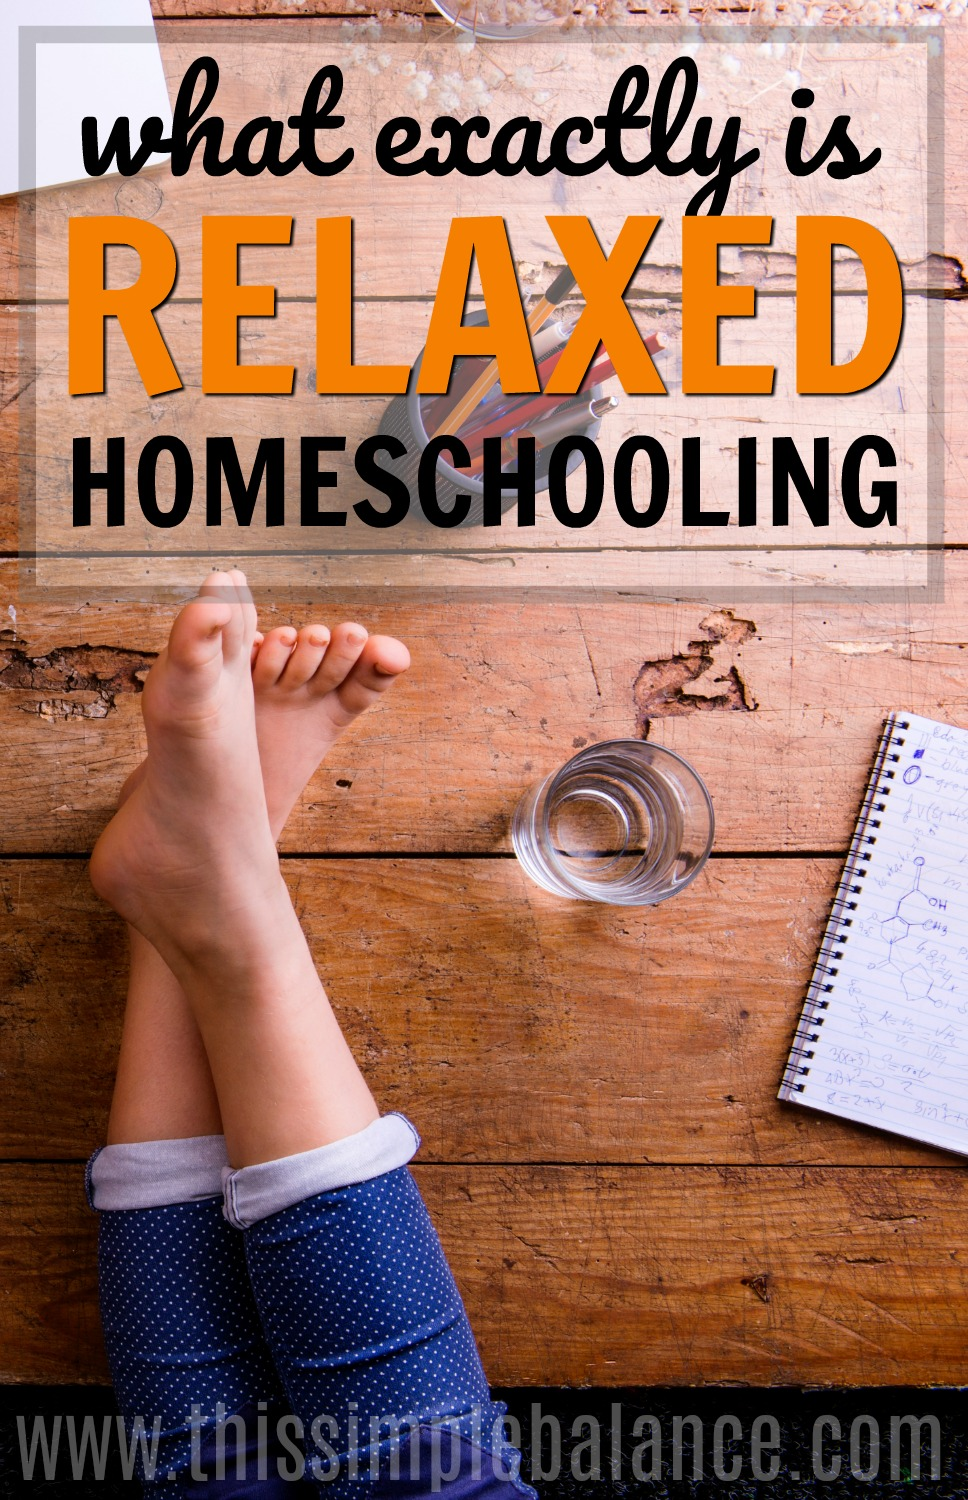 Maybe you've heard about relaxed homeschooling, but how do you actually DEFINE it? And how is it different than eclectic homeschooling or unschooling? This post digs deep to find the differences and give relaxed homeschooling a clear definition that sets is apart as its own homeschool style.